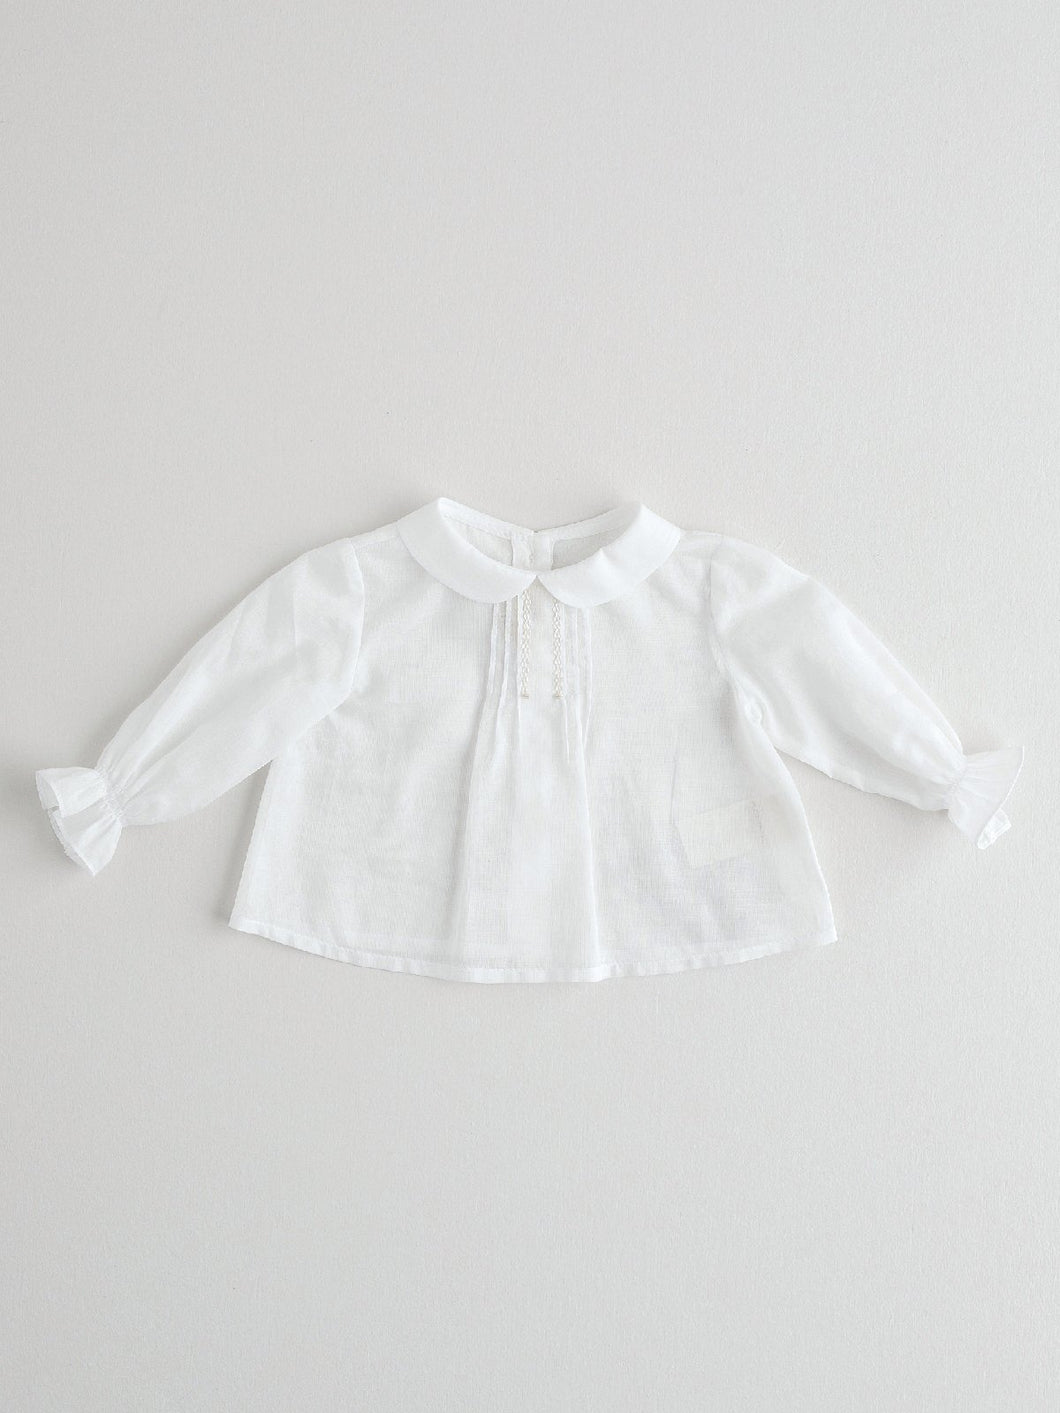 WHITE BLOUSE FOR NEWBORN BABIES